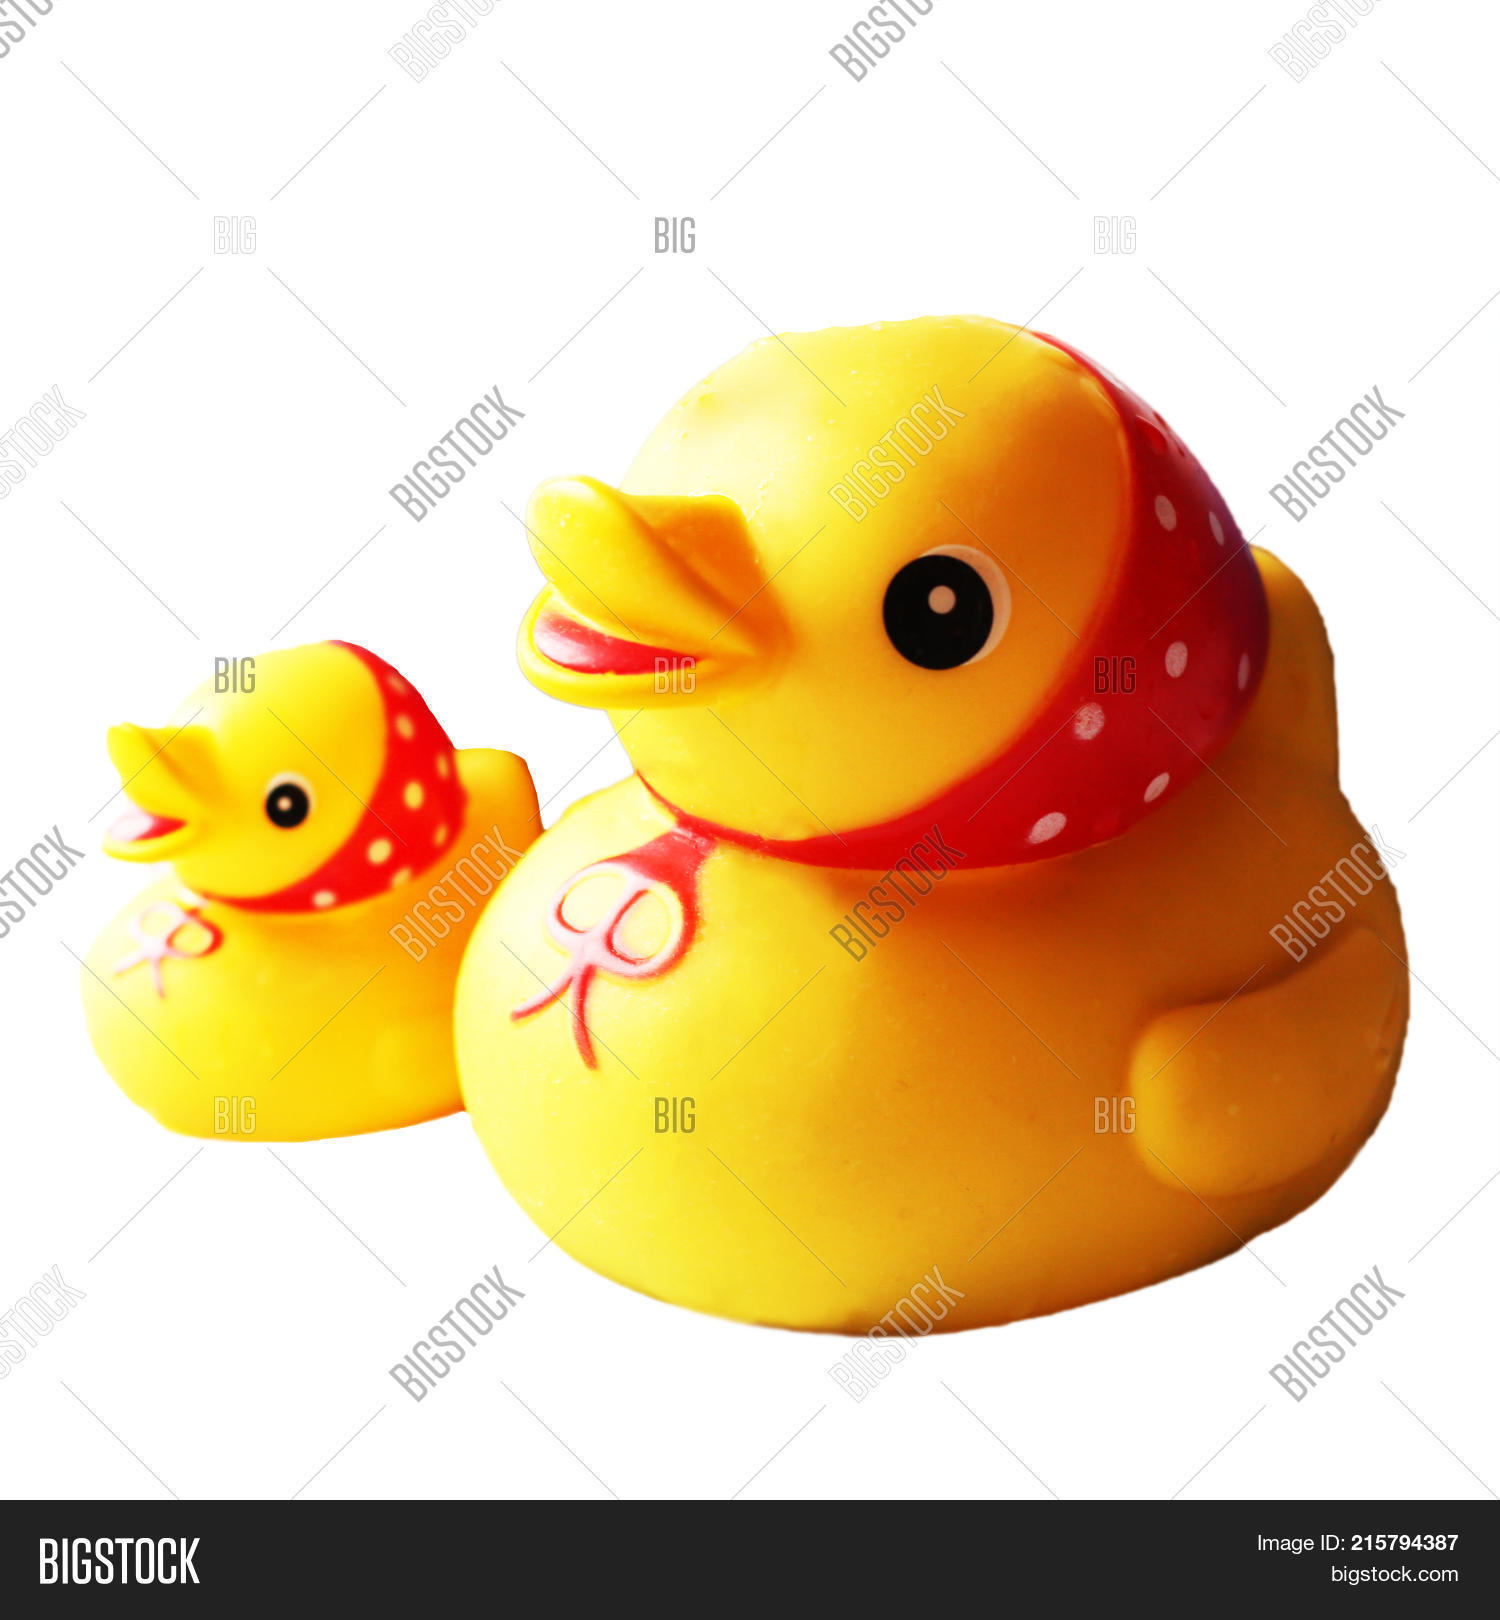 Yellow Rubber Duck Image & Photo (Free Trial) | Bigstock